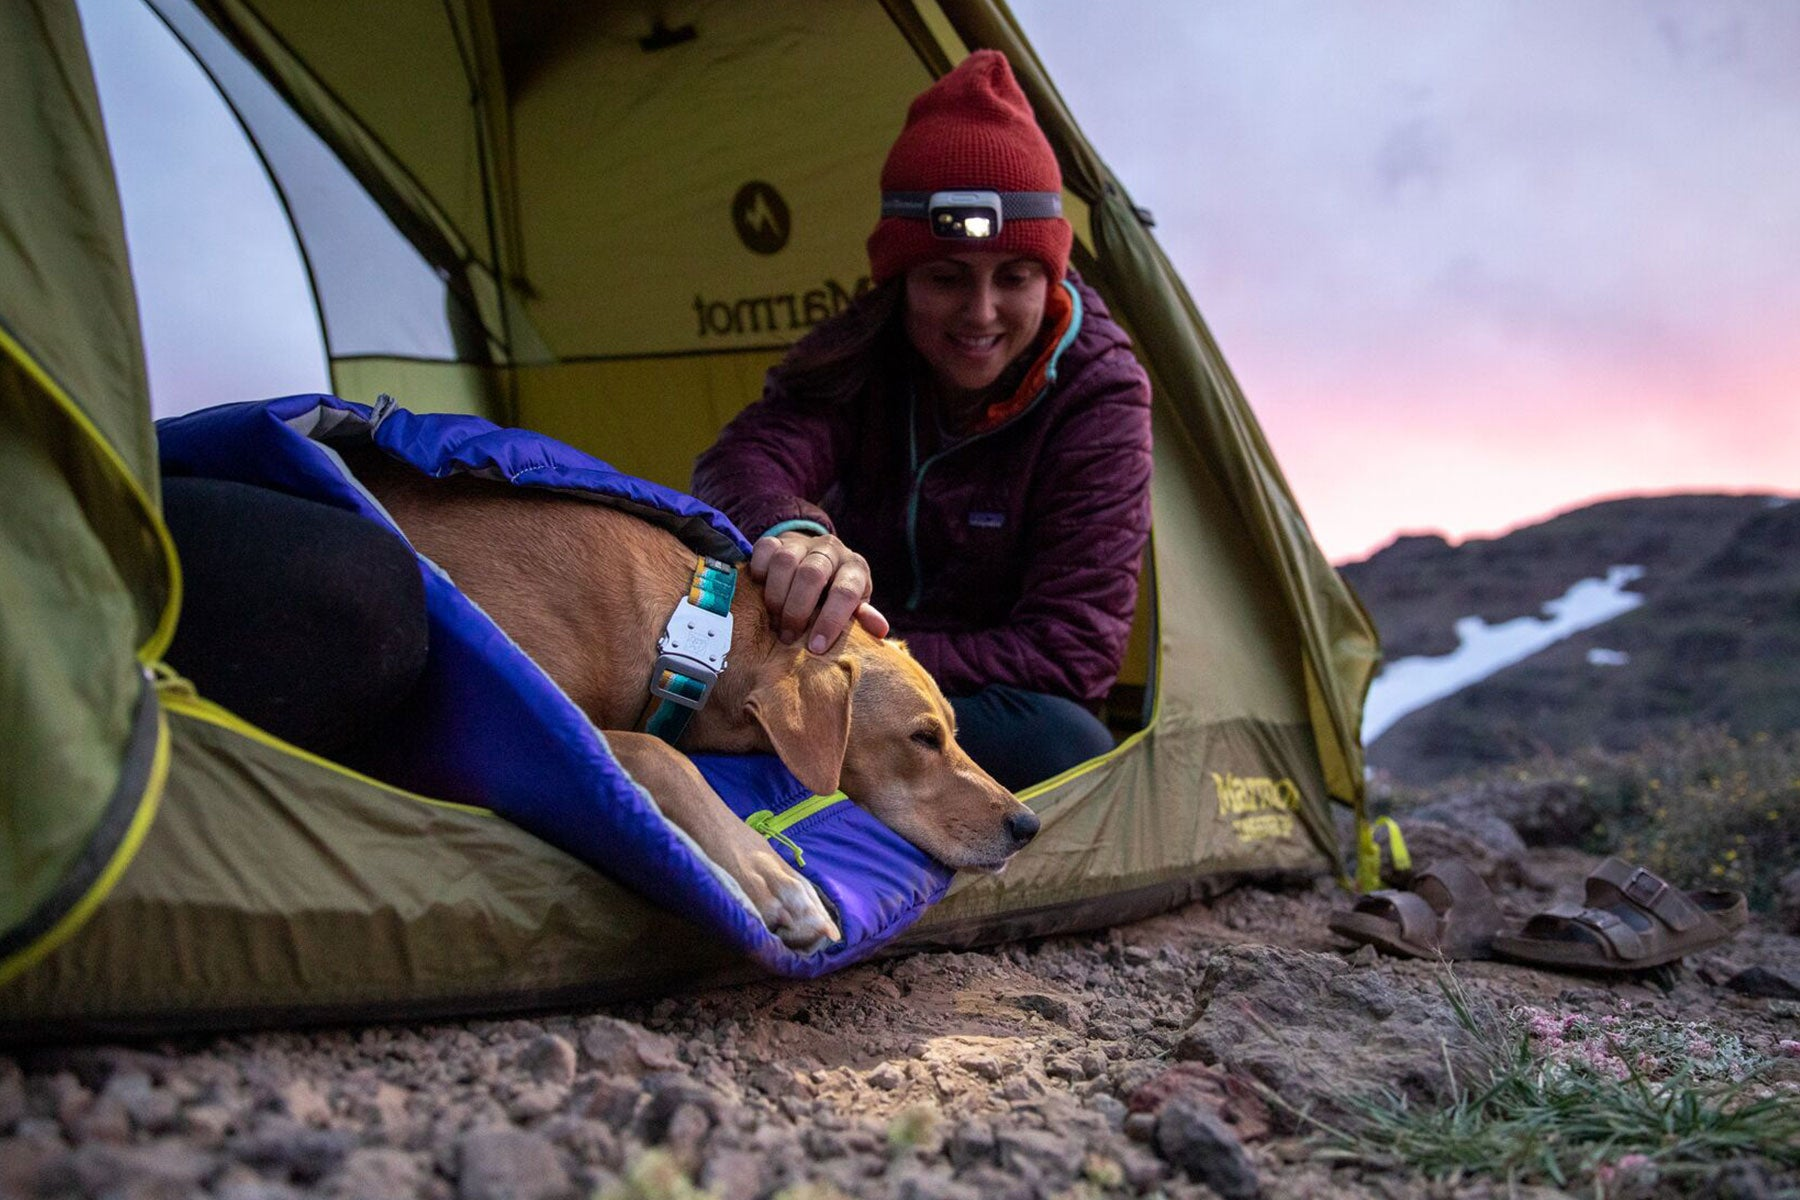 Dog and Human in camping tent at sunset